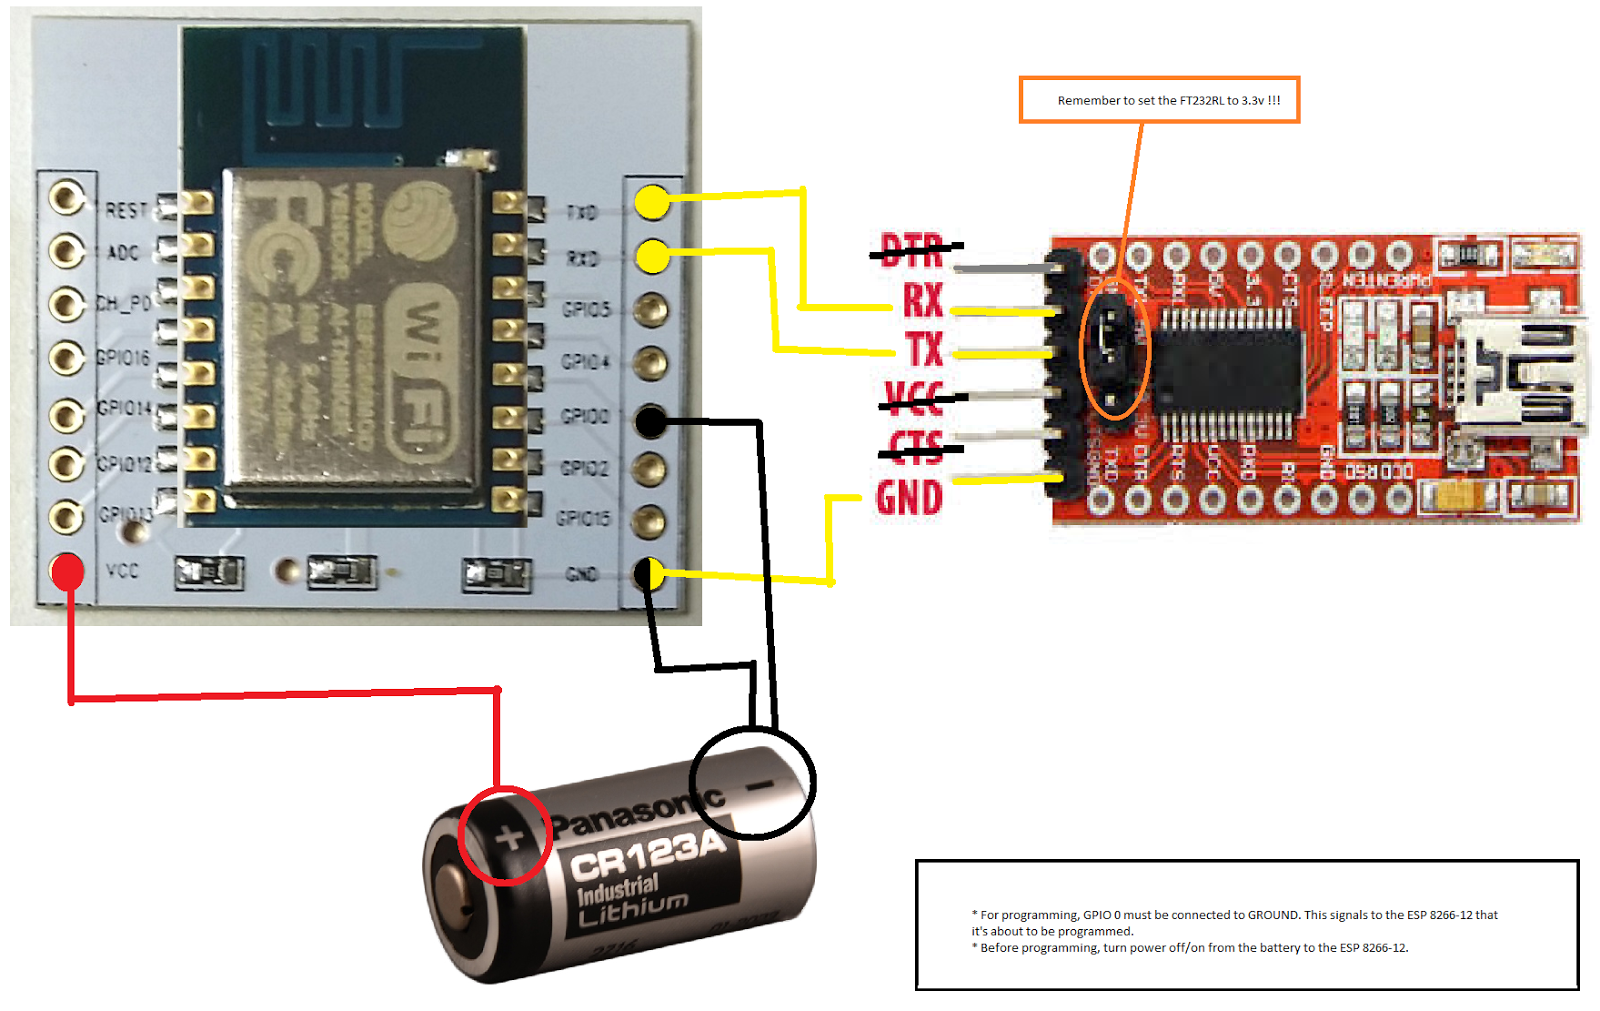 Programming A Standalone Esp 8266 12 Using Arduino Ide And Ft232rl Pic Programmer Schematic Together With Serial Connect The Components As Per Following Pictures